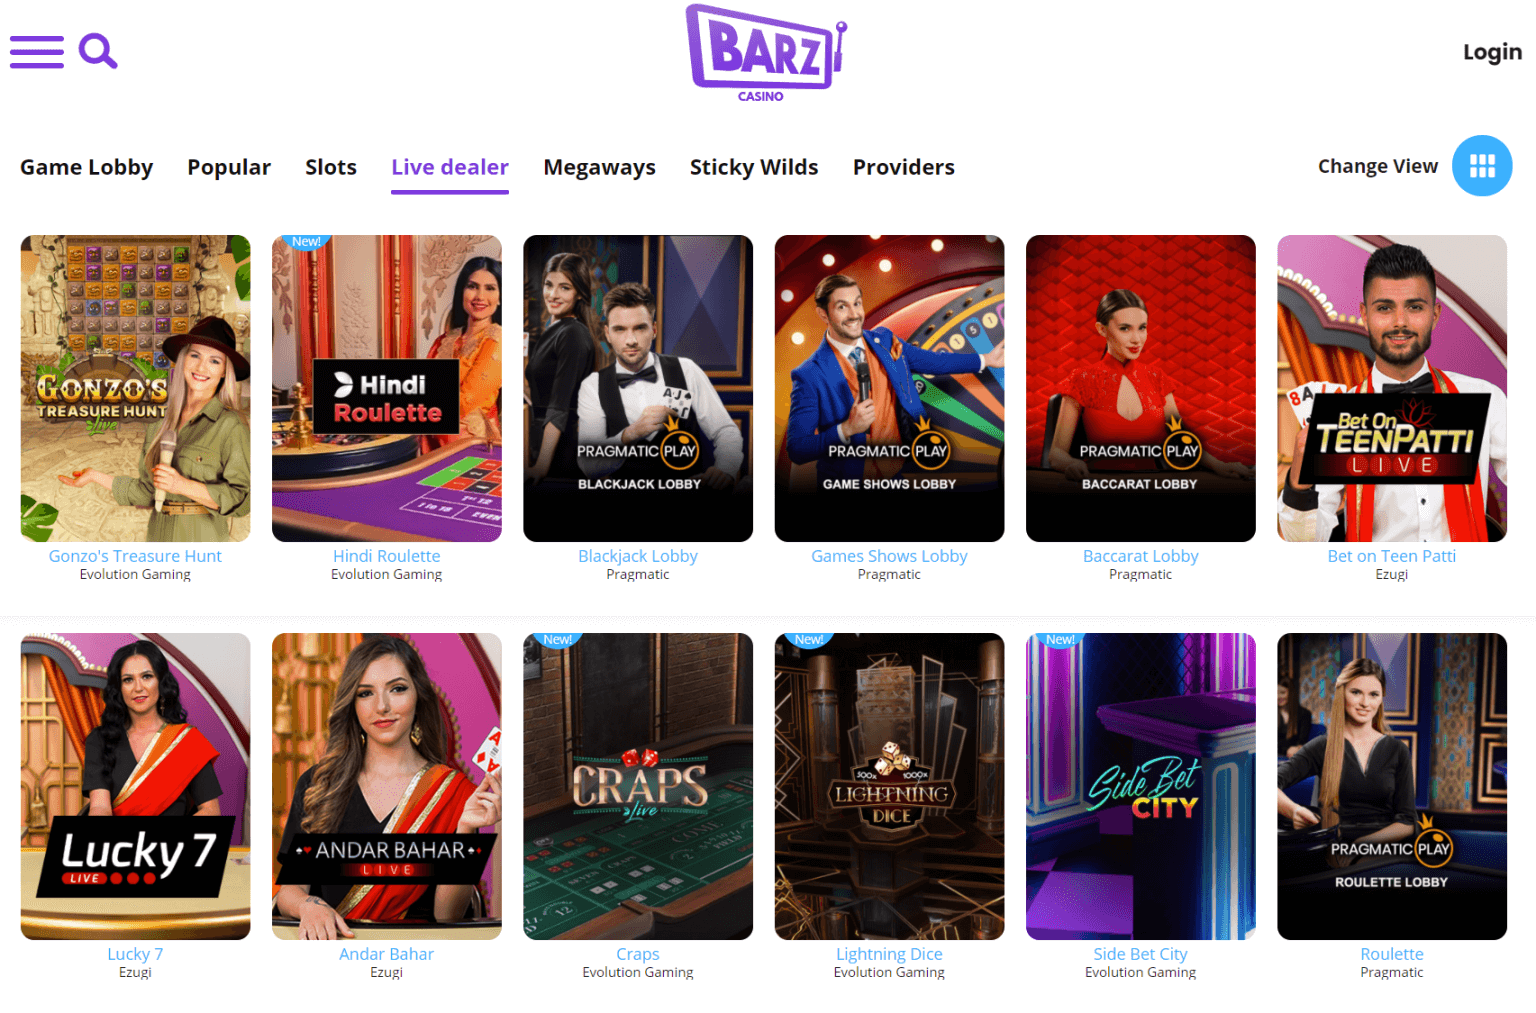 A screenshot showing some of the various live casino games you can play at Barz